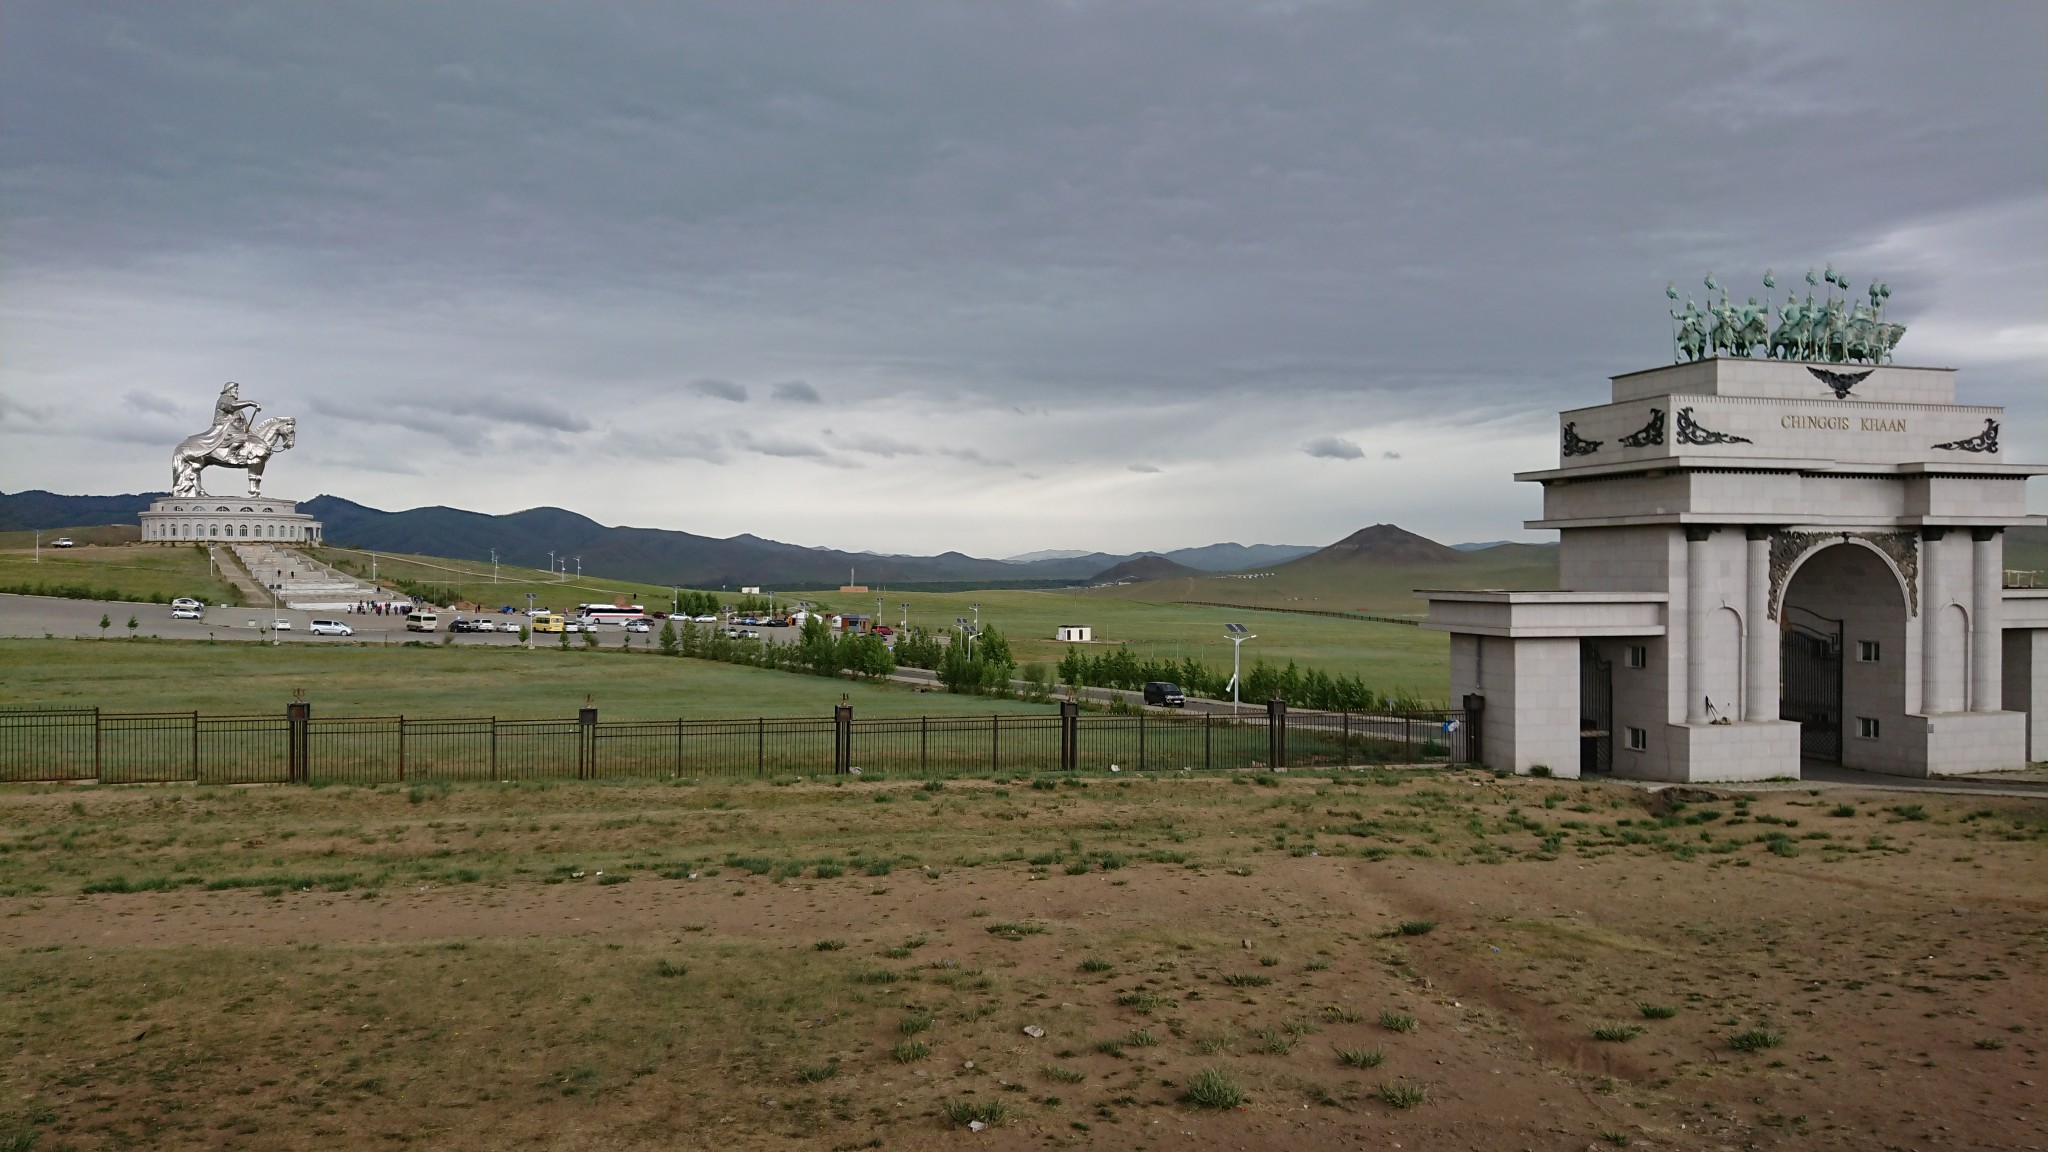 Mongolie31